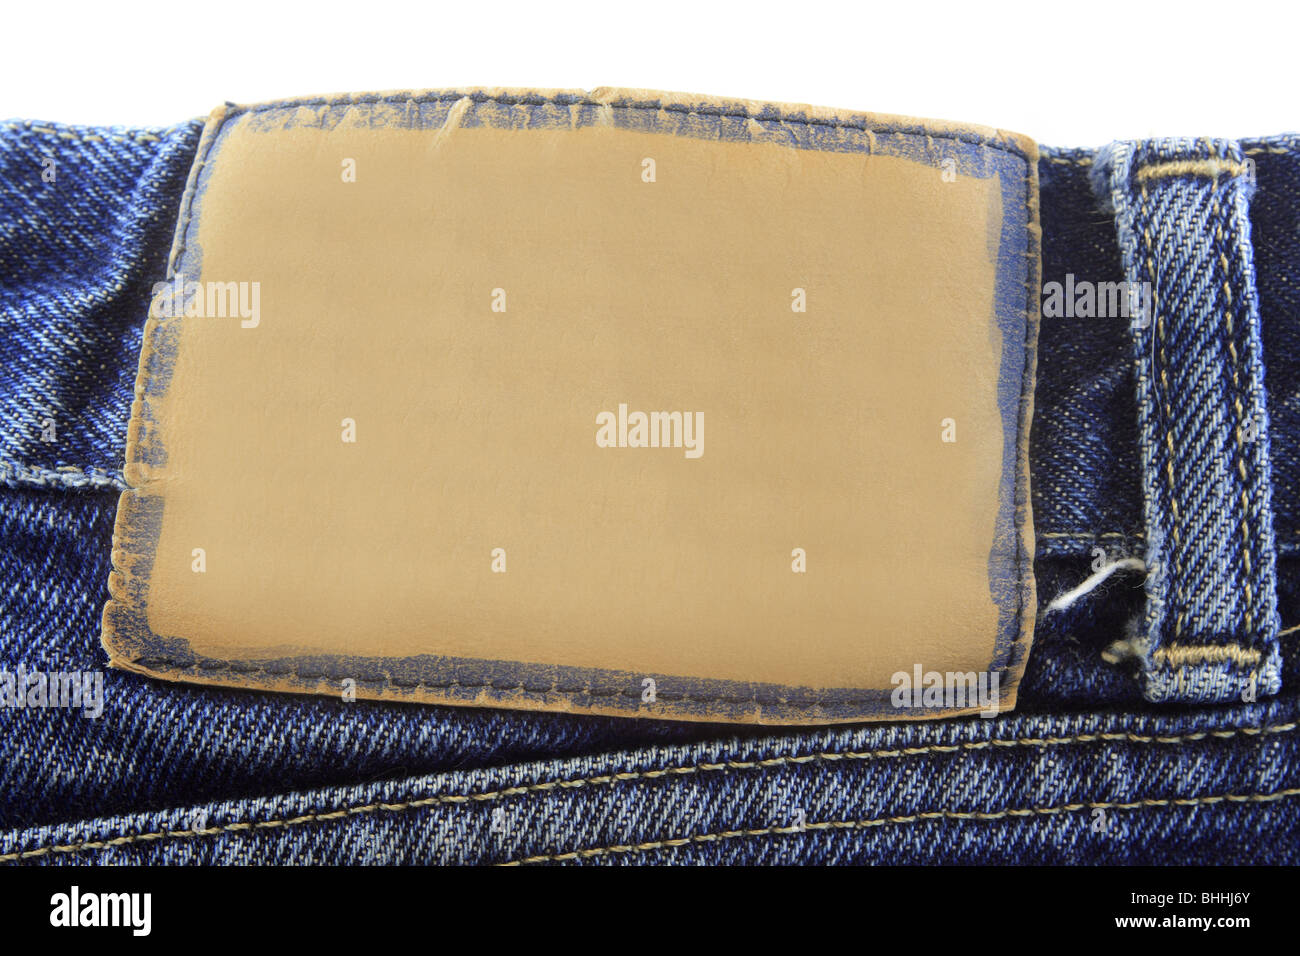 jeans tag stock photos jeans tag stock images alamy